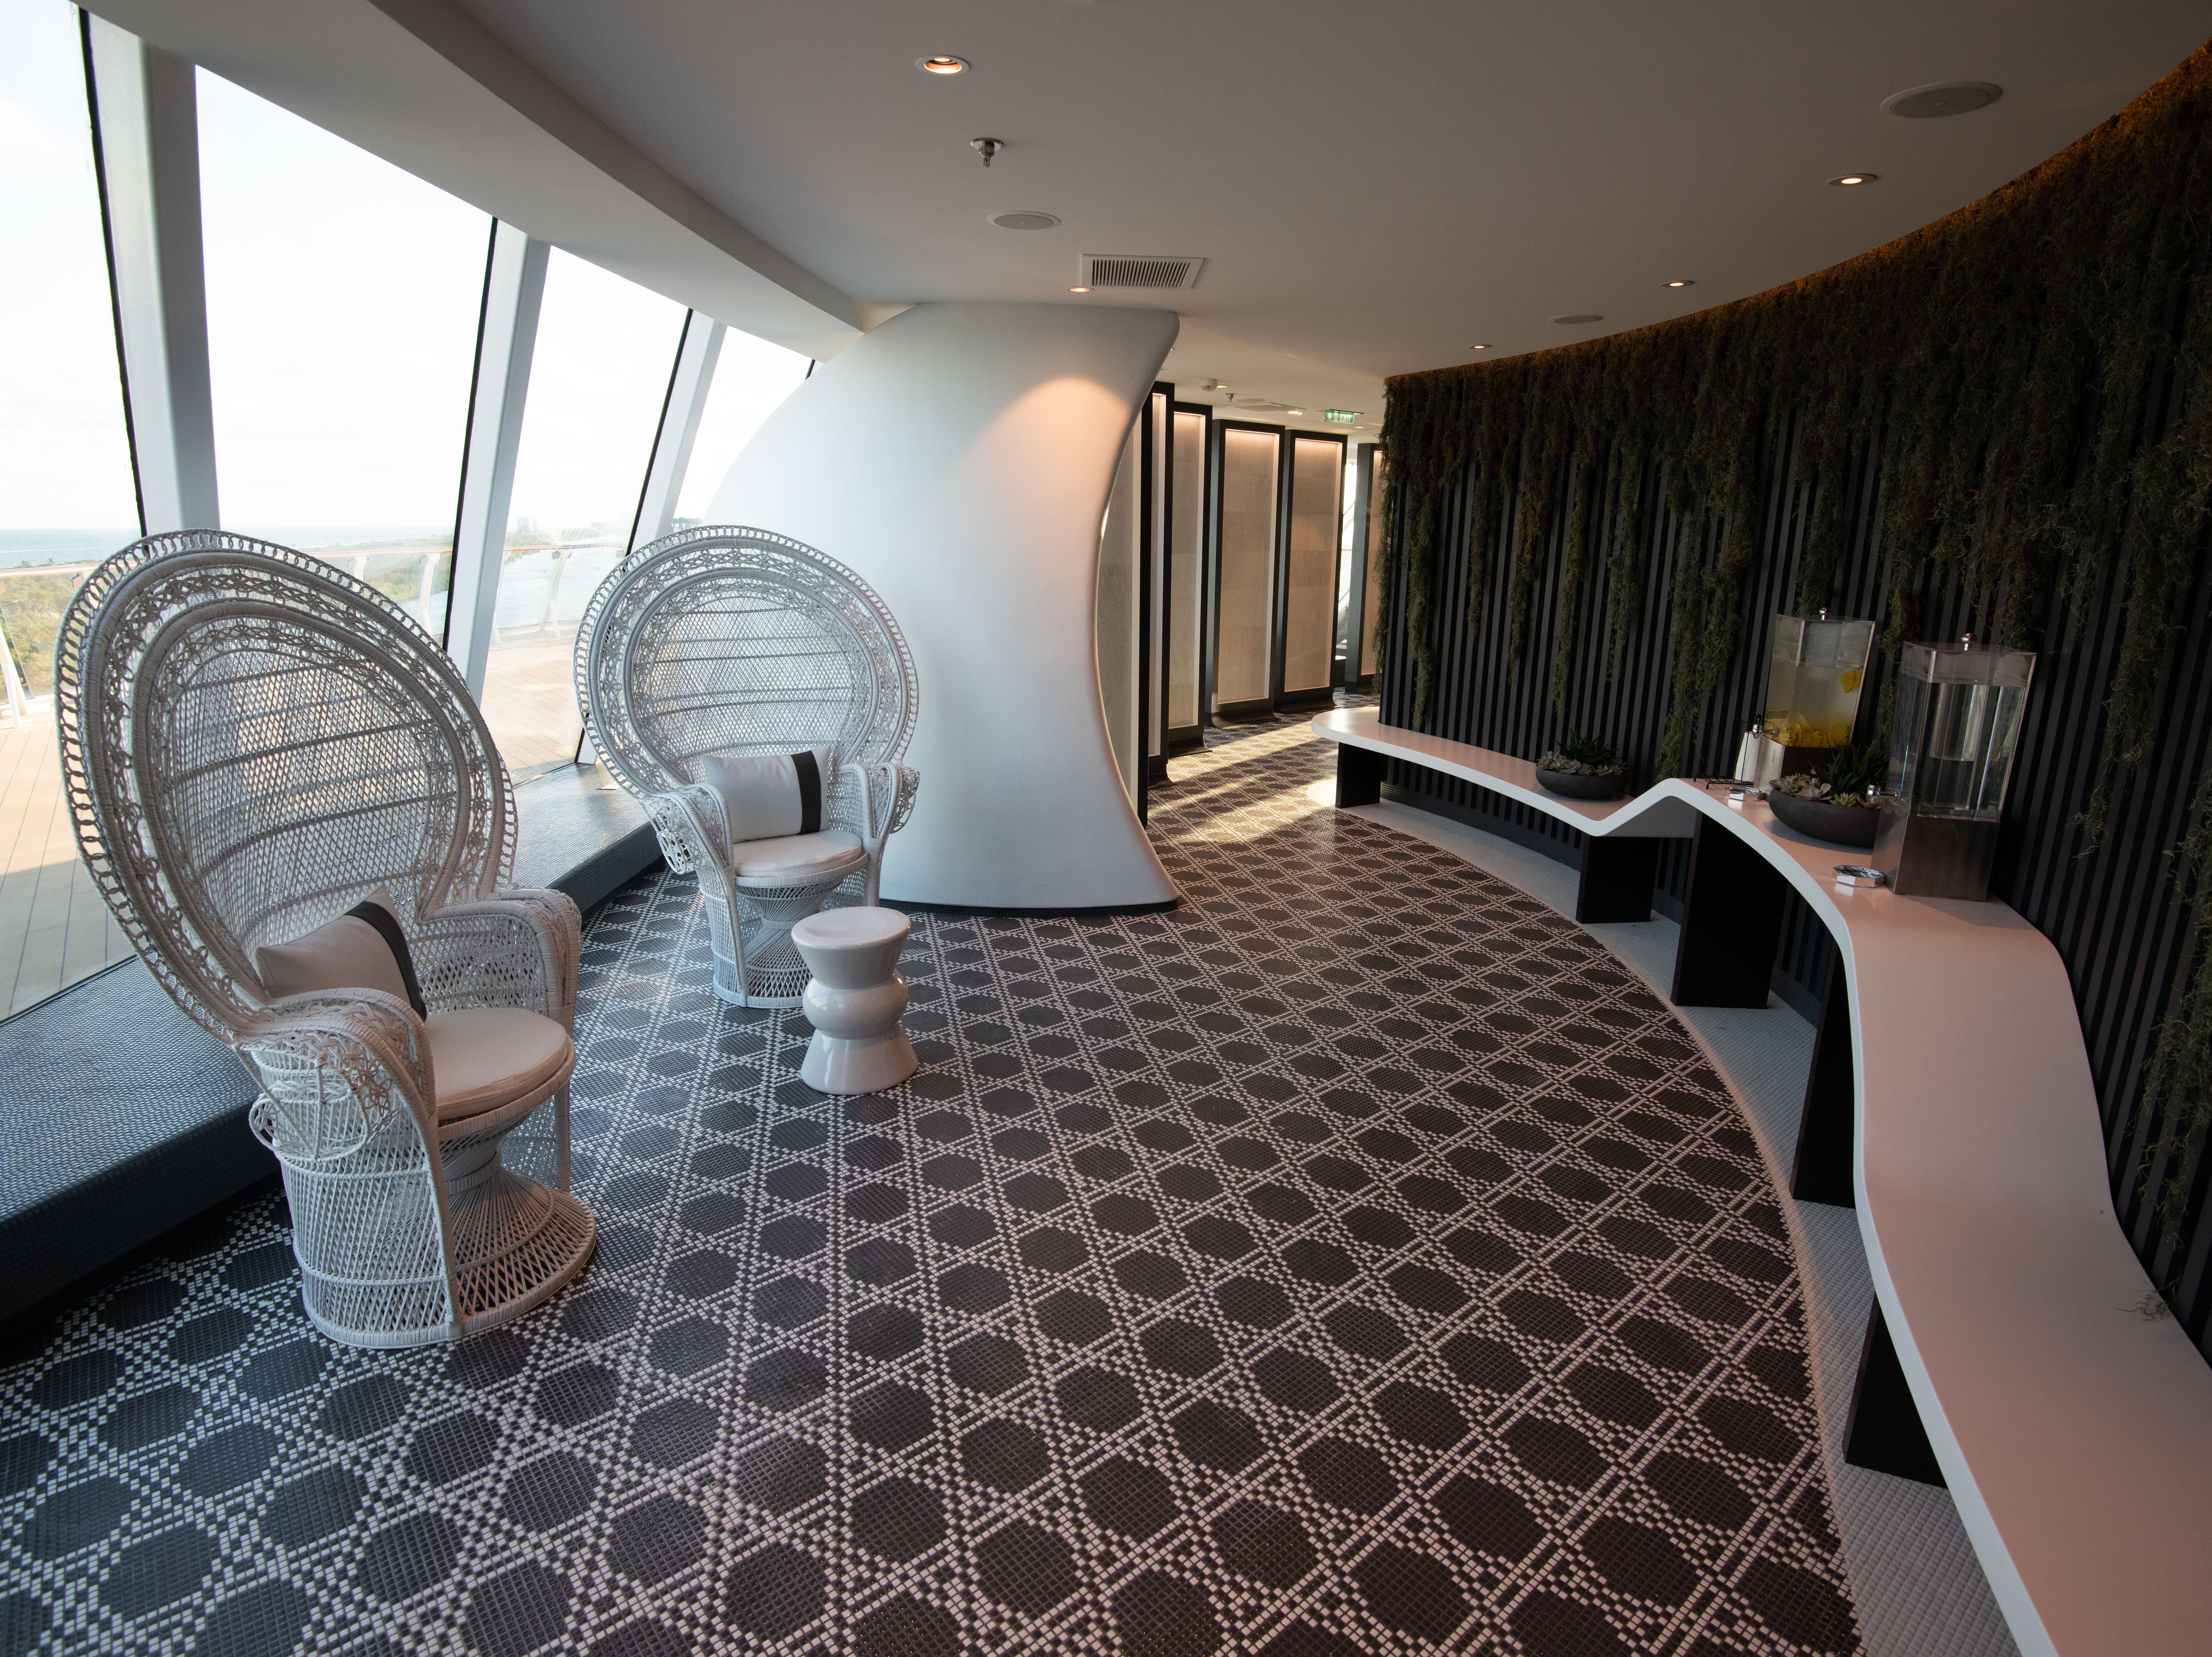 Celebrity Edge's spa is home to a sprawling thermal suite with eight distinctive therapeutic experiences.